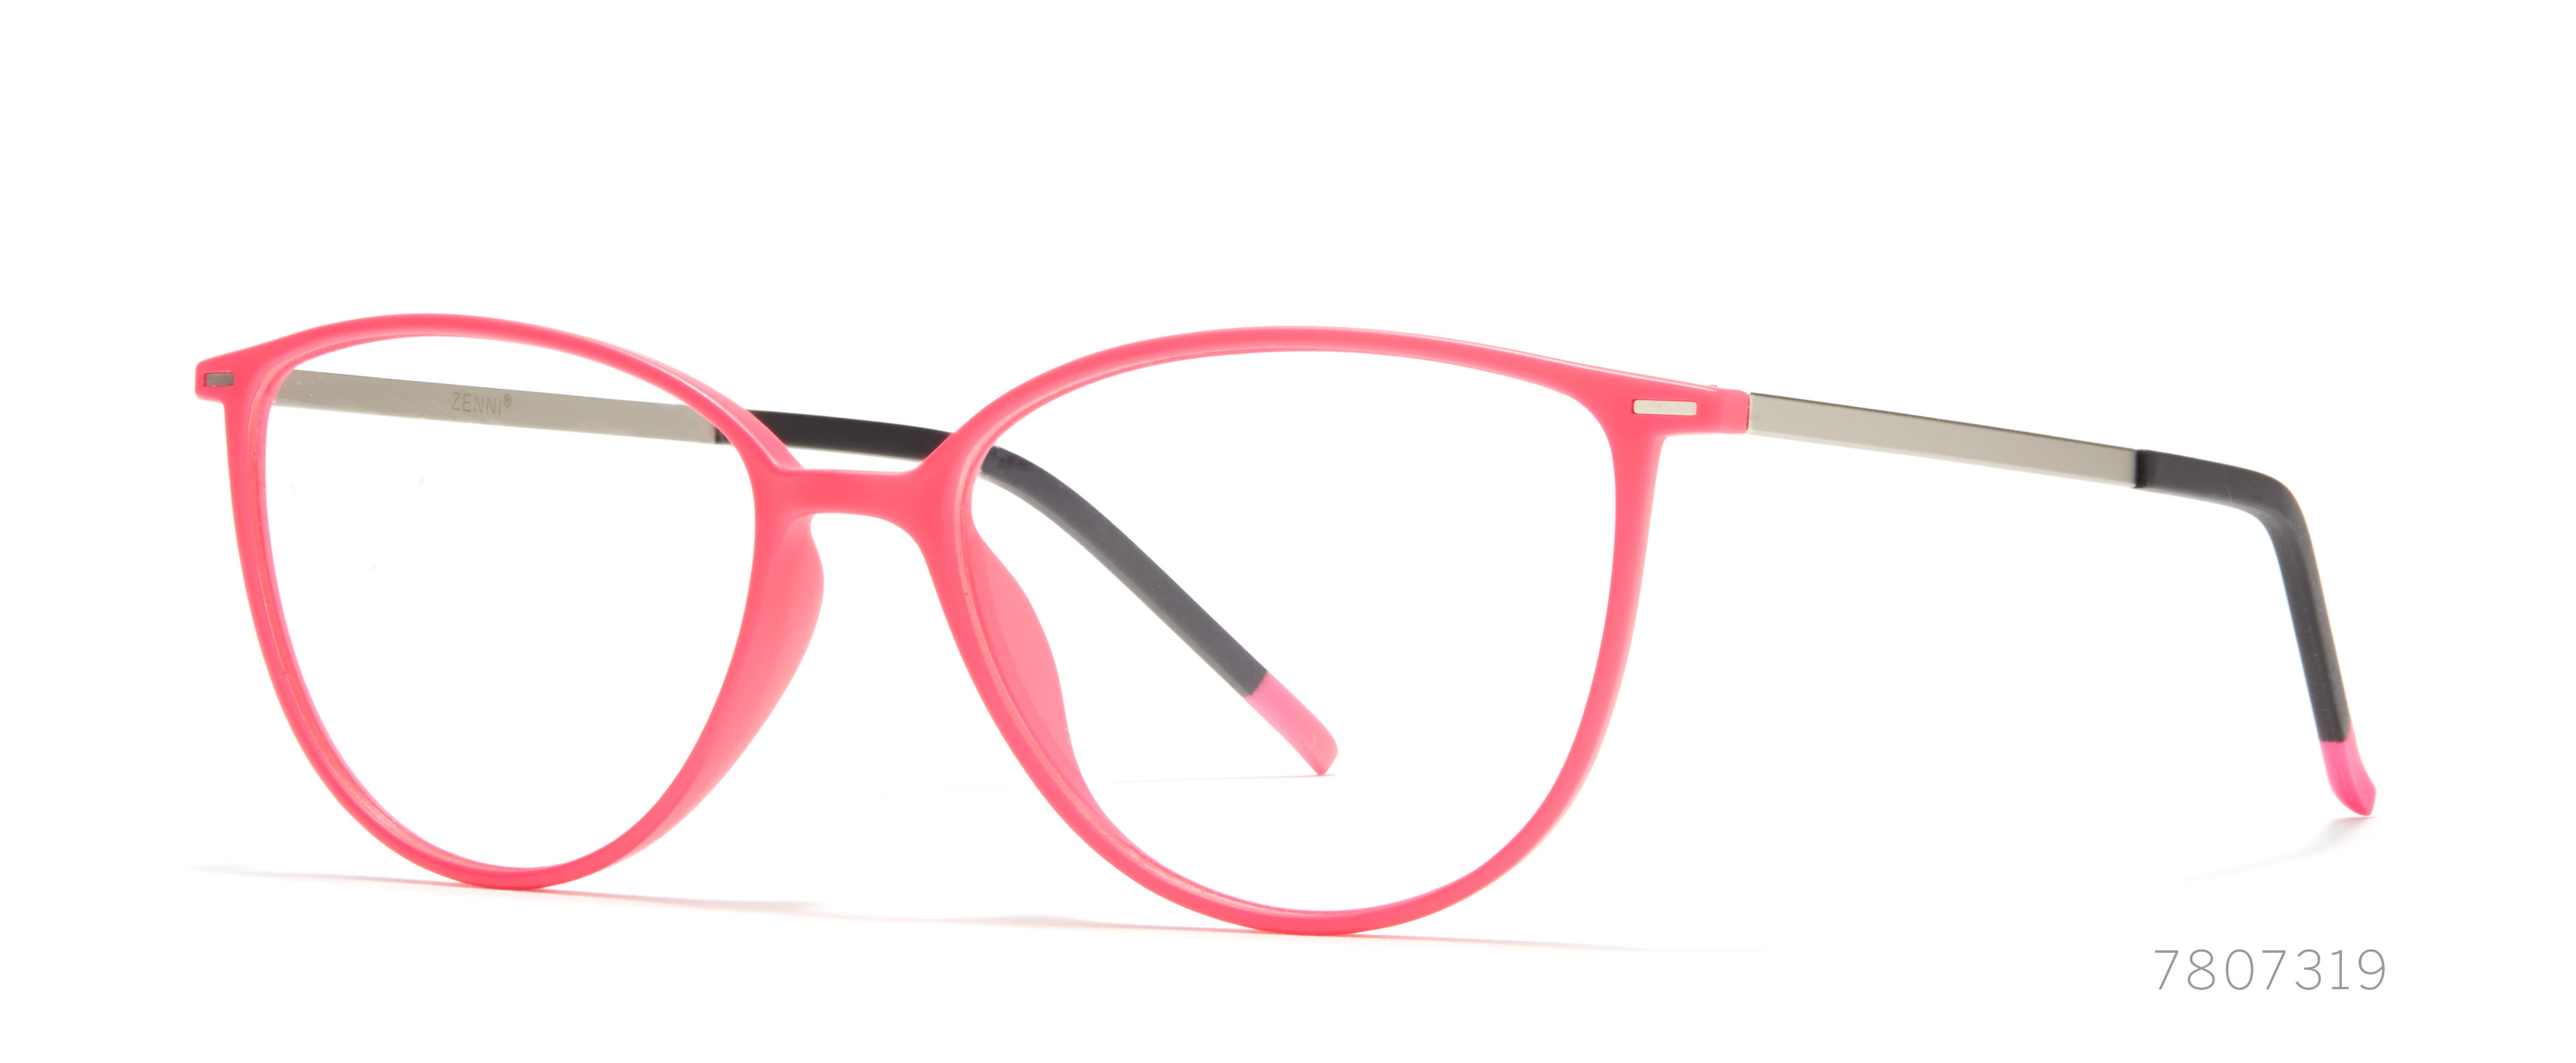 10 Glasses For Heart Shaped Faces Zenni Optical